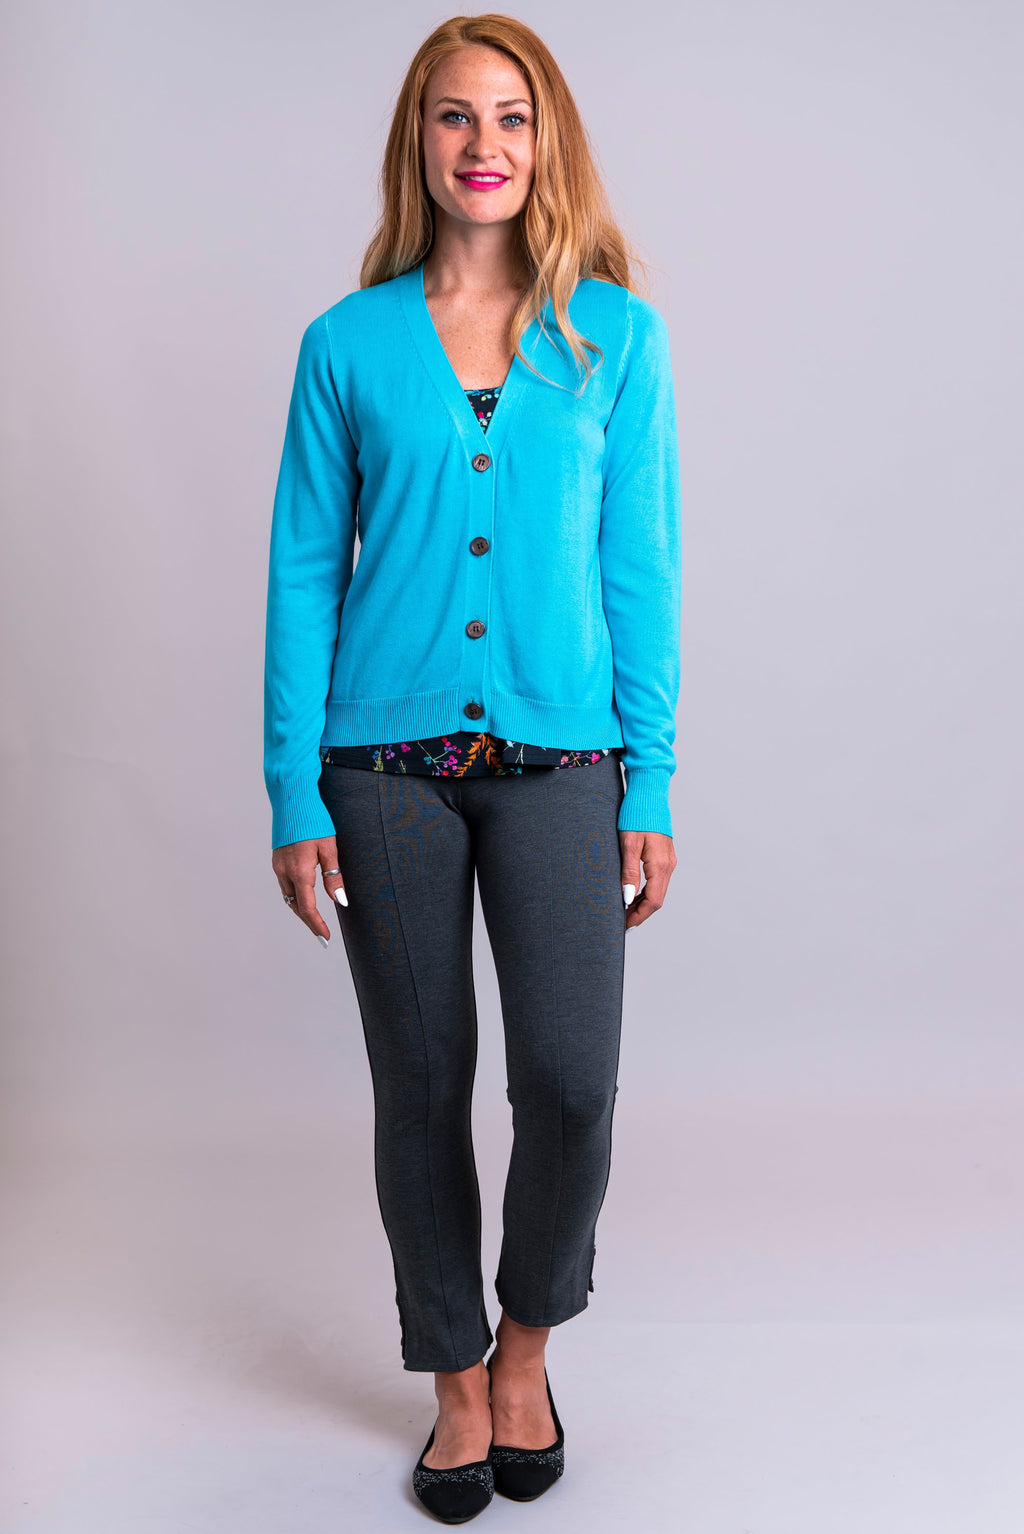 Jessica Sweater, Aqua, Bamboo/Cotton - Blue Sky Clothing Co